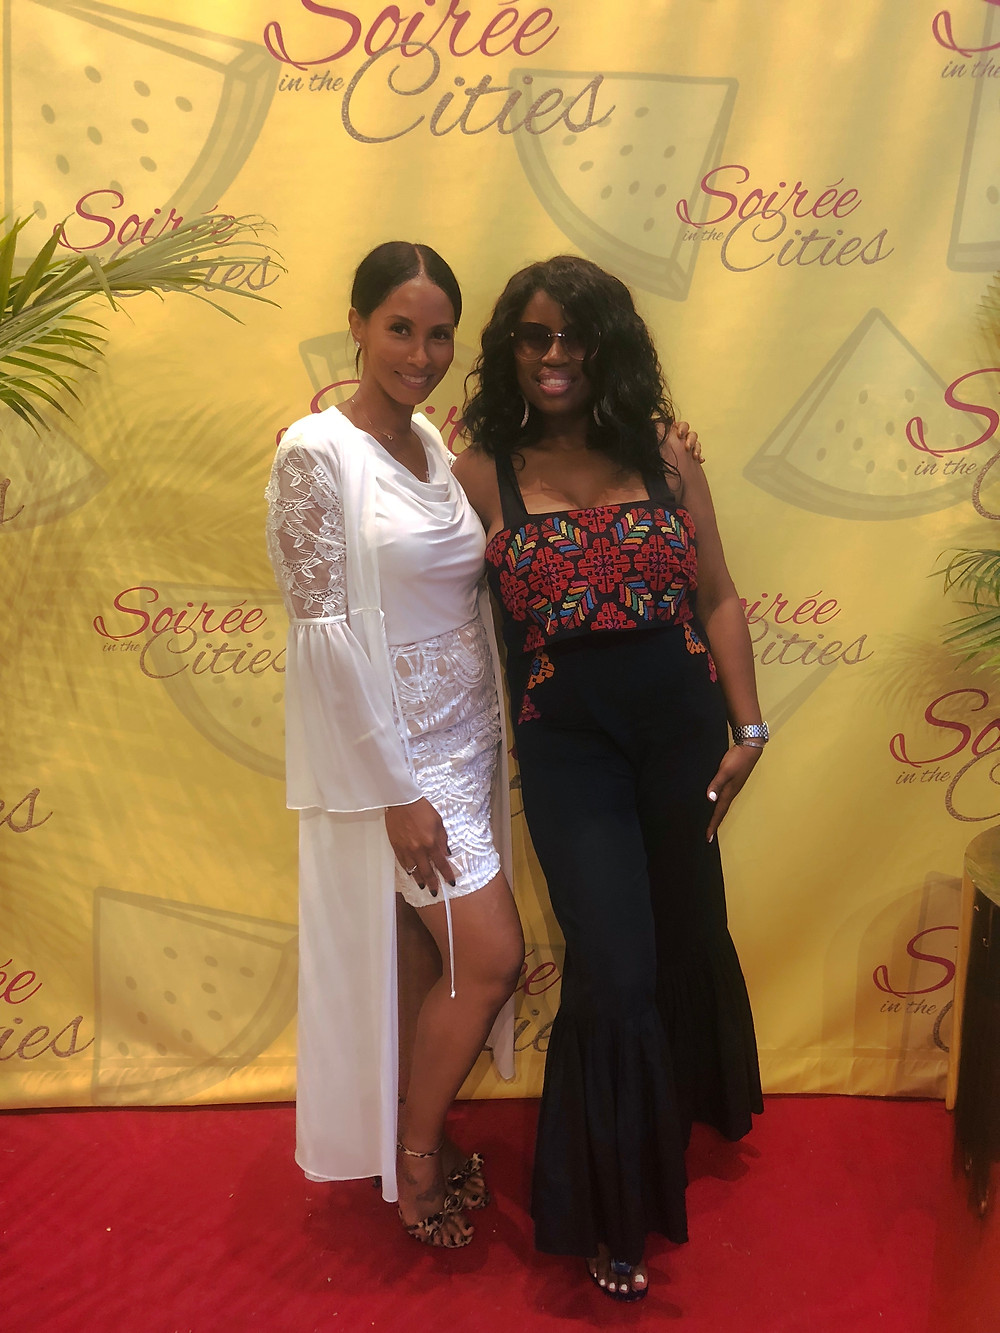 Rashada Siojo Founder and creator of 27 Days To Flawless & Flawless By Siojo Pictured with Ebony Edwards Founder and creator of Soiree In The Cities at the 5th annual SITC